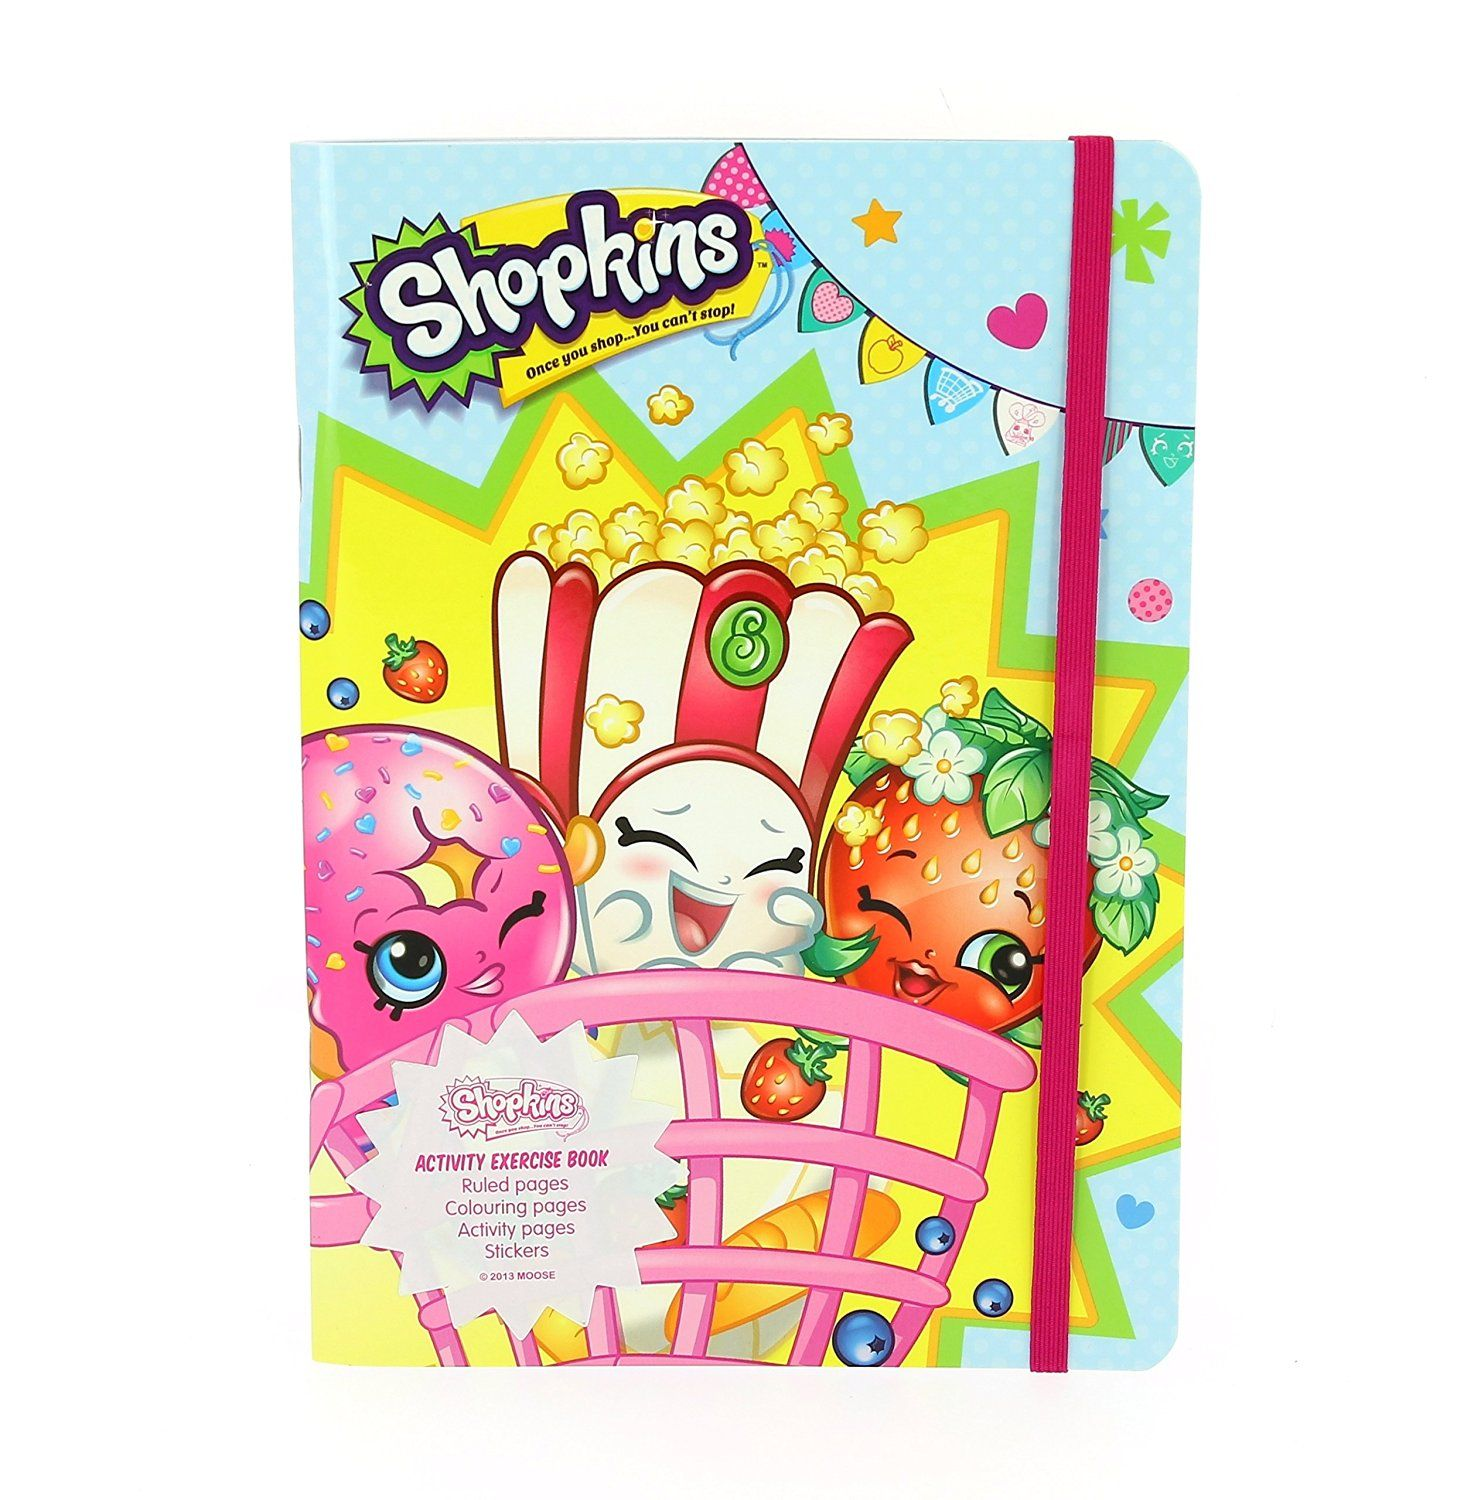 Shopkins Activity Exercise Book Amazon Co Uk Office Products Exercise Book Shopkins Valentines Cards